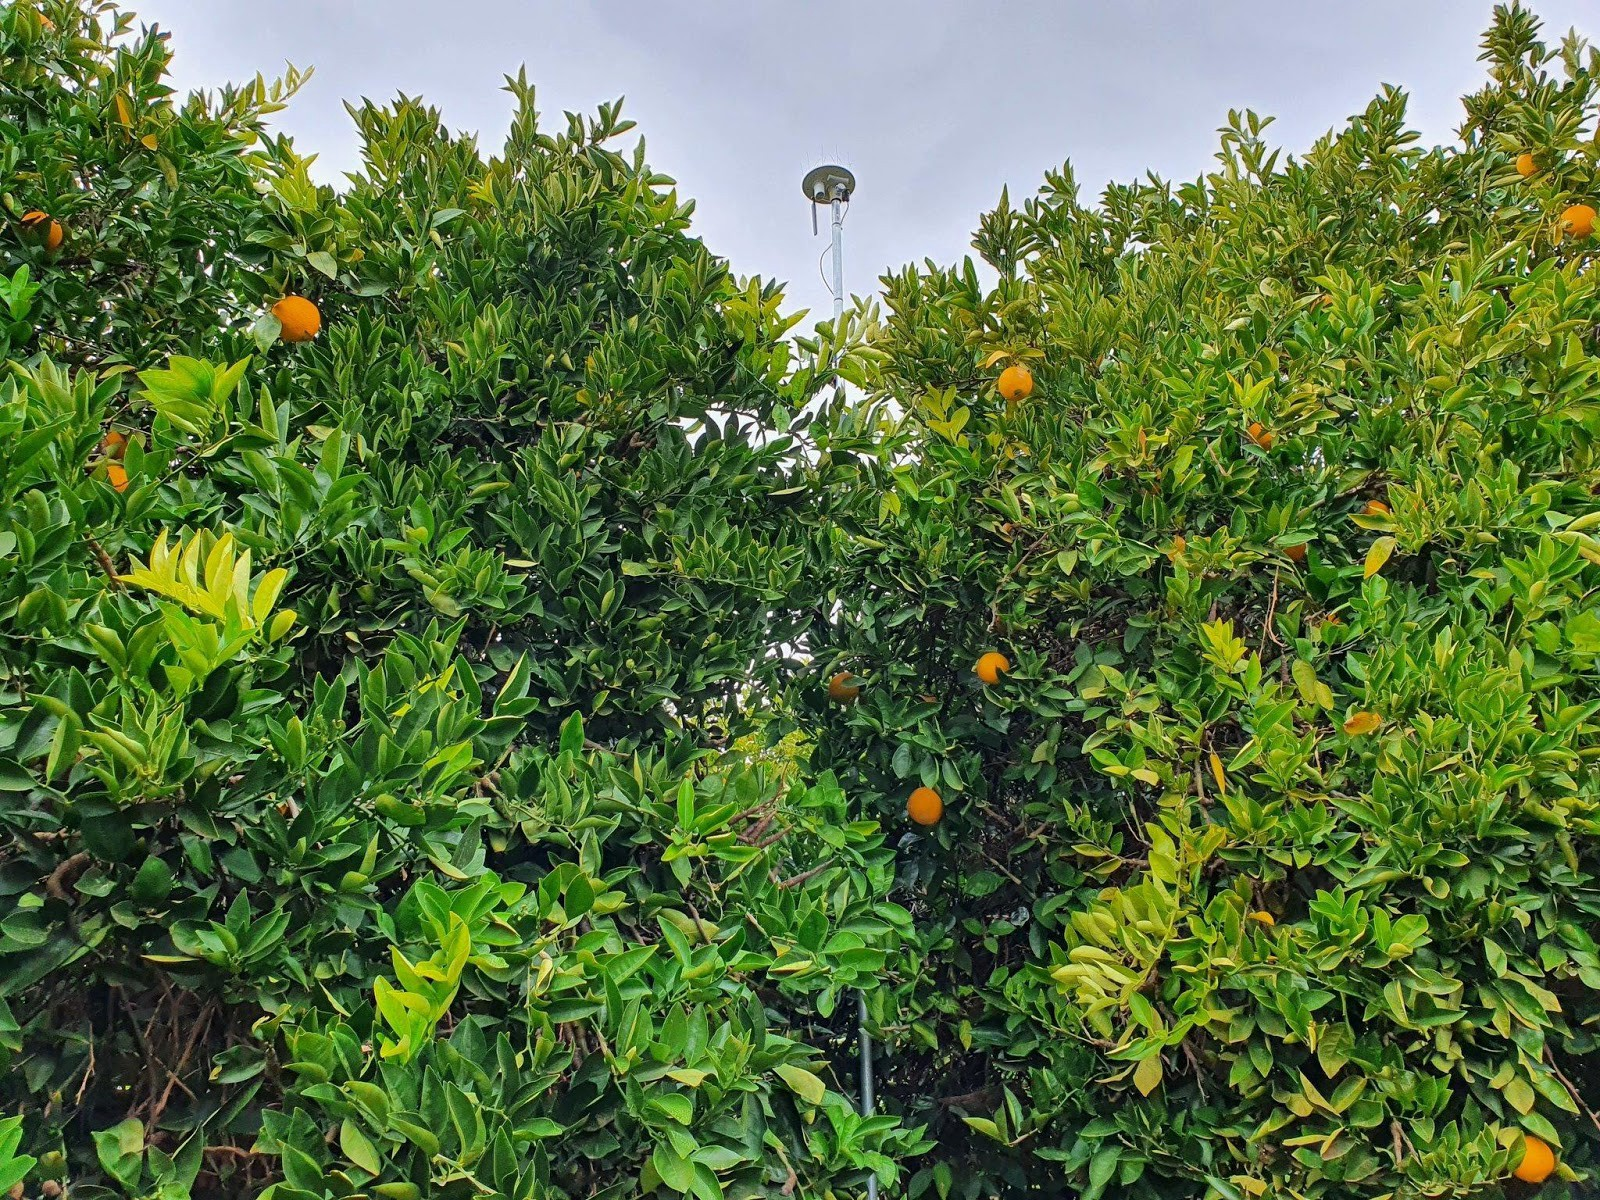 Arable Mark 2 seen from below, high above a canopy of citrus trees